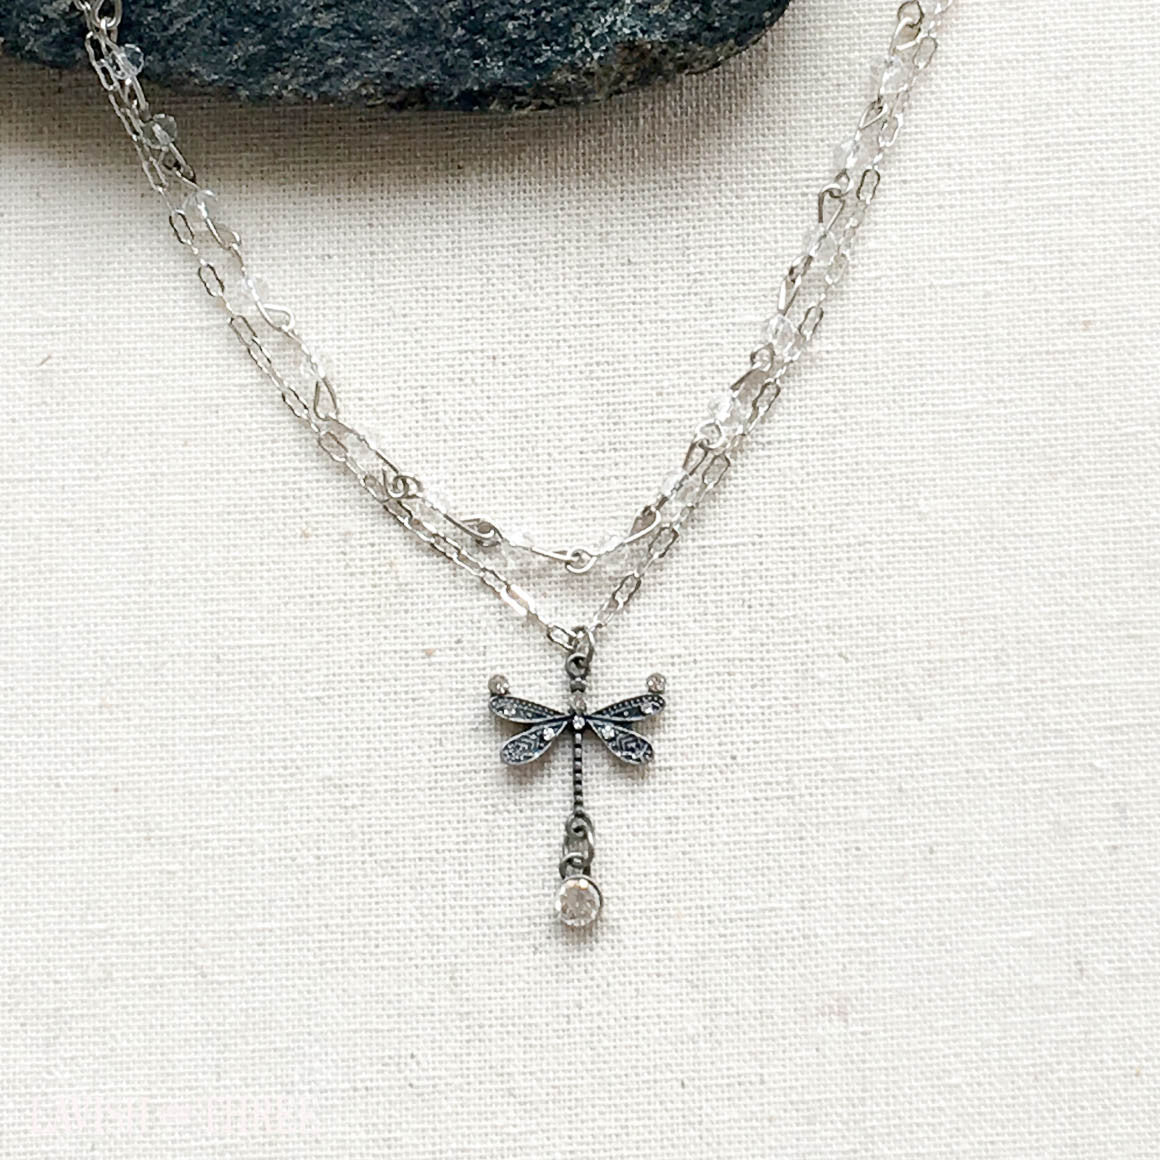 double short silver necklace with crystal embellished dragonfly charm, Lavish Three 3